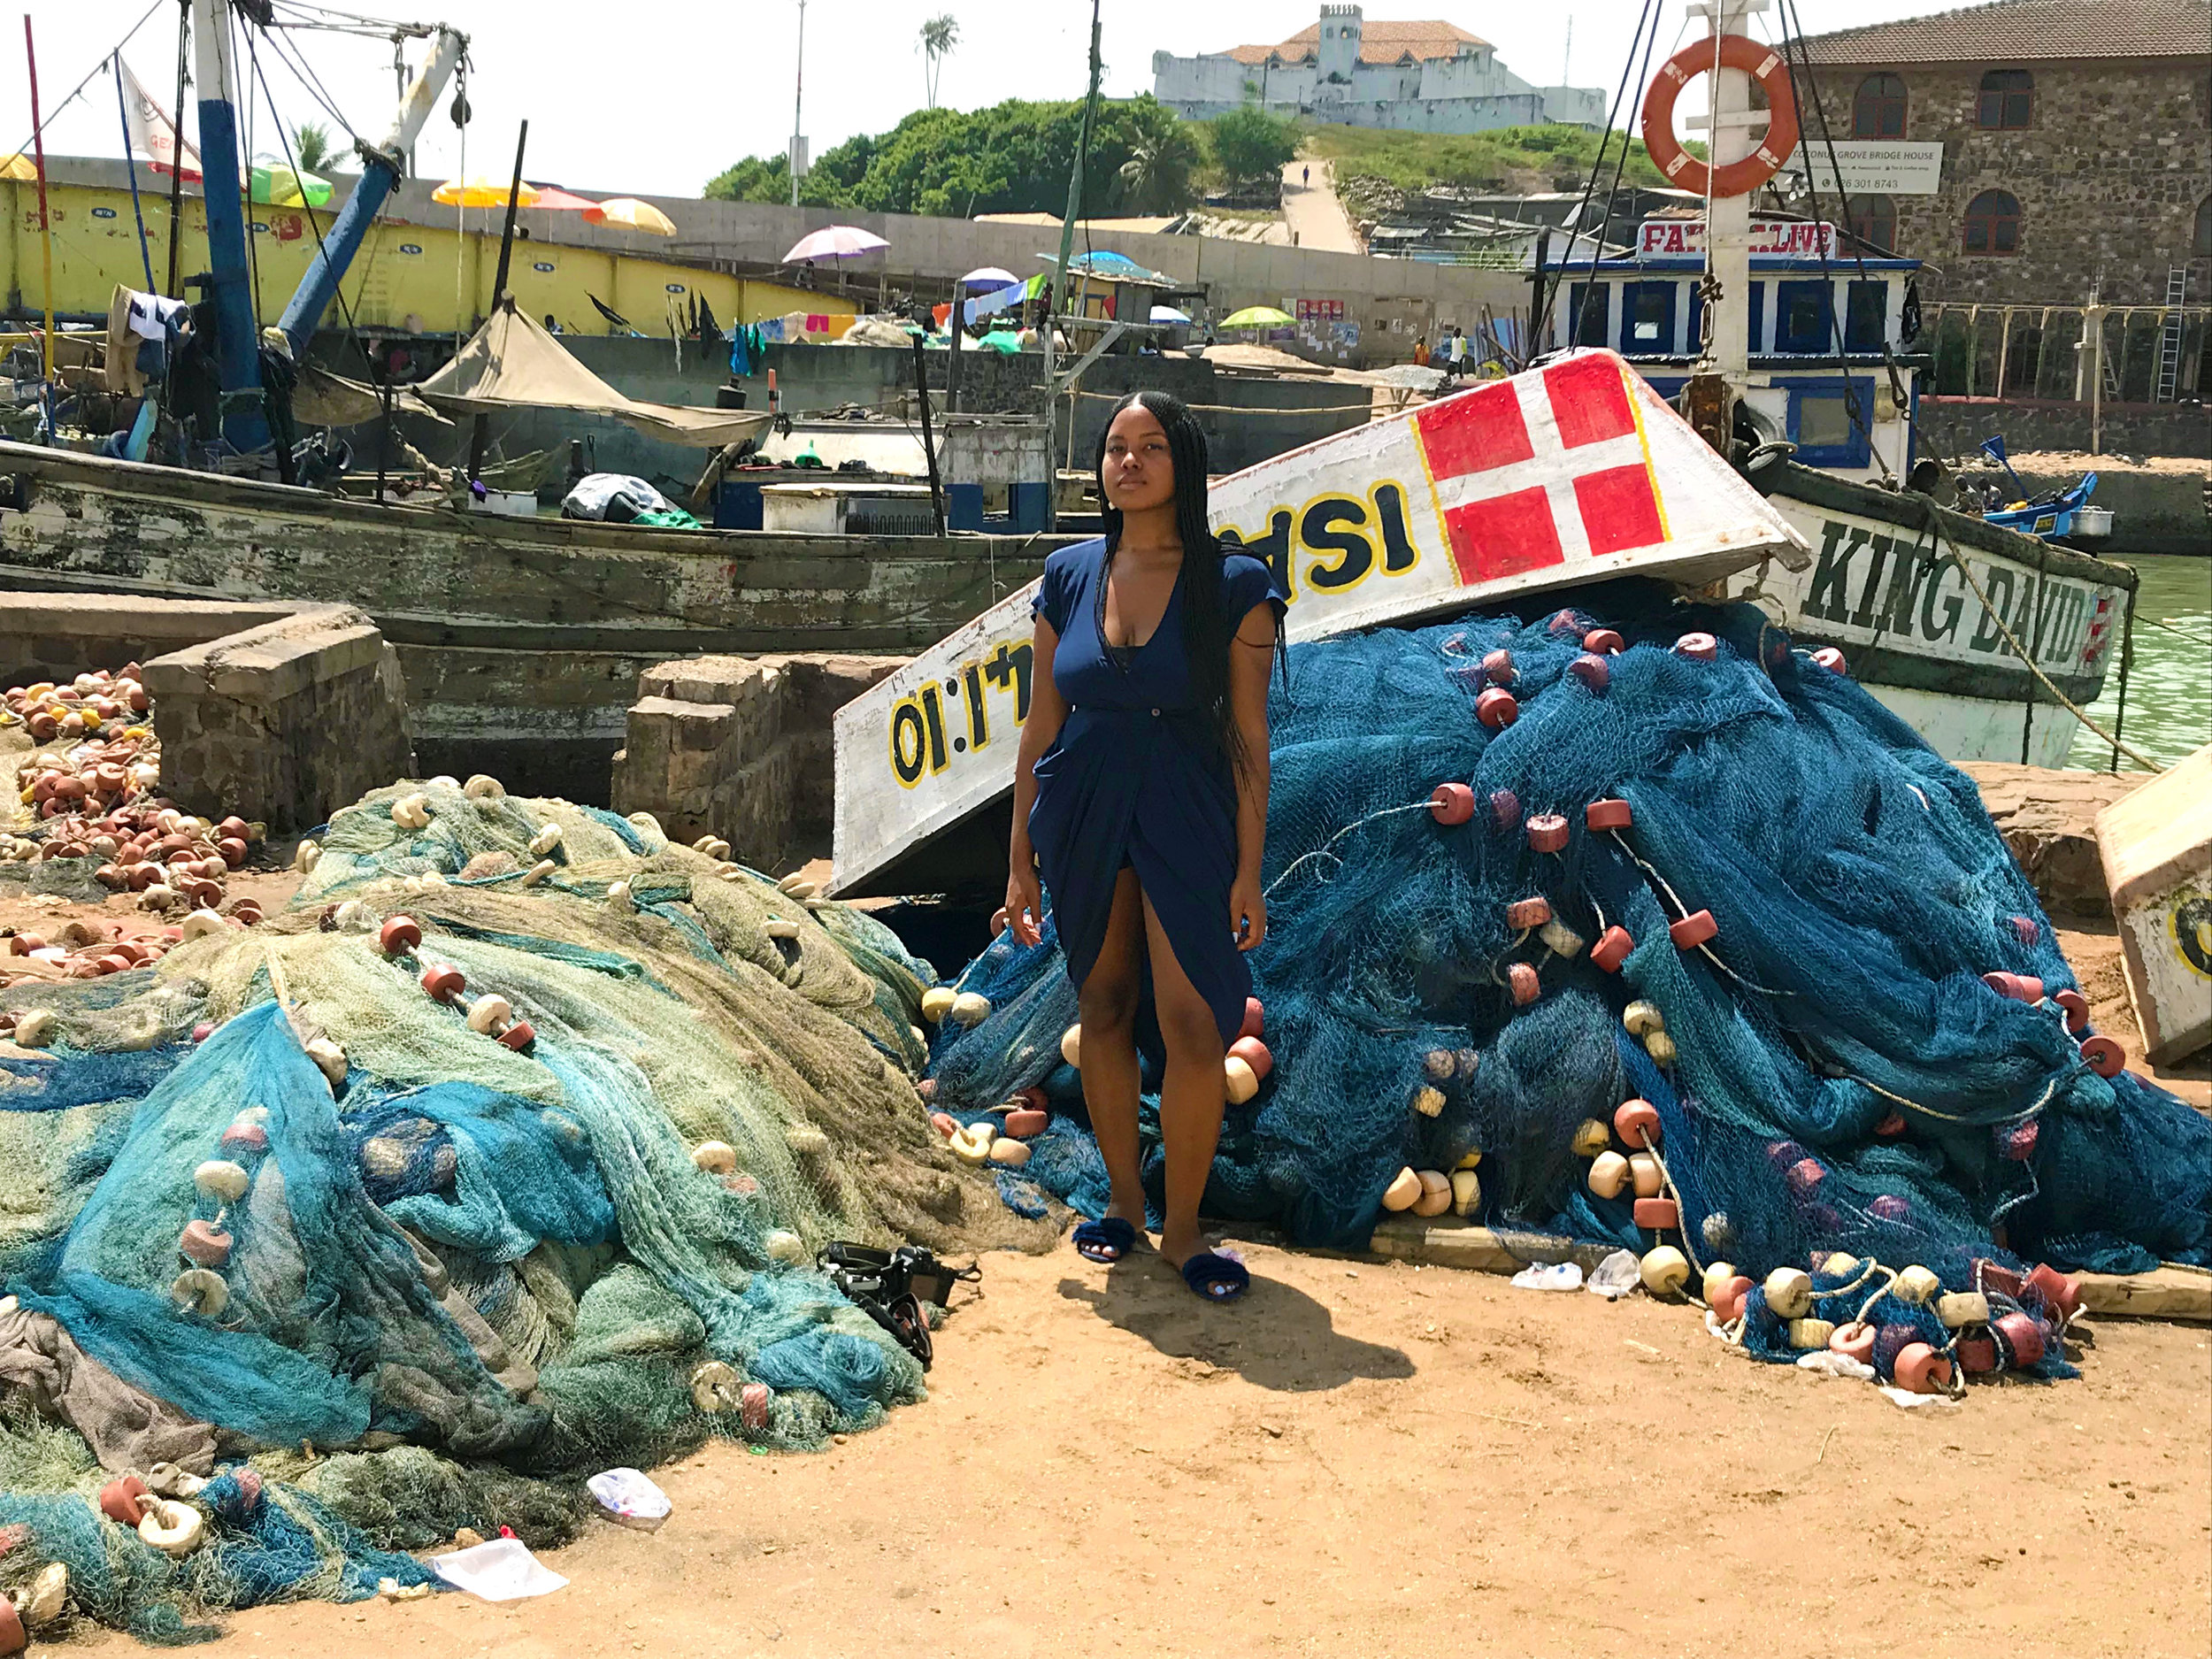 Located on the coast, Elmina is a fishing town. These clusters of boats and nets are the livelihood of many.